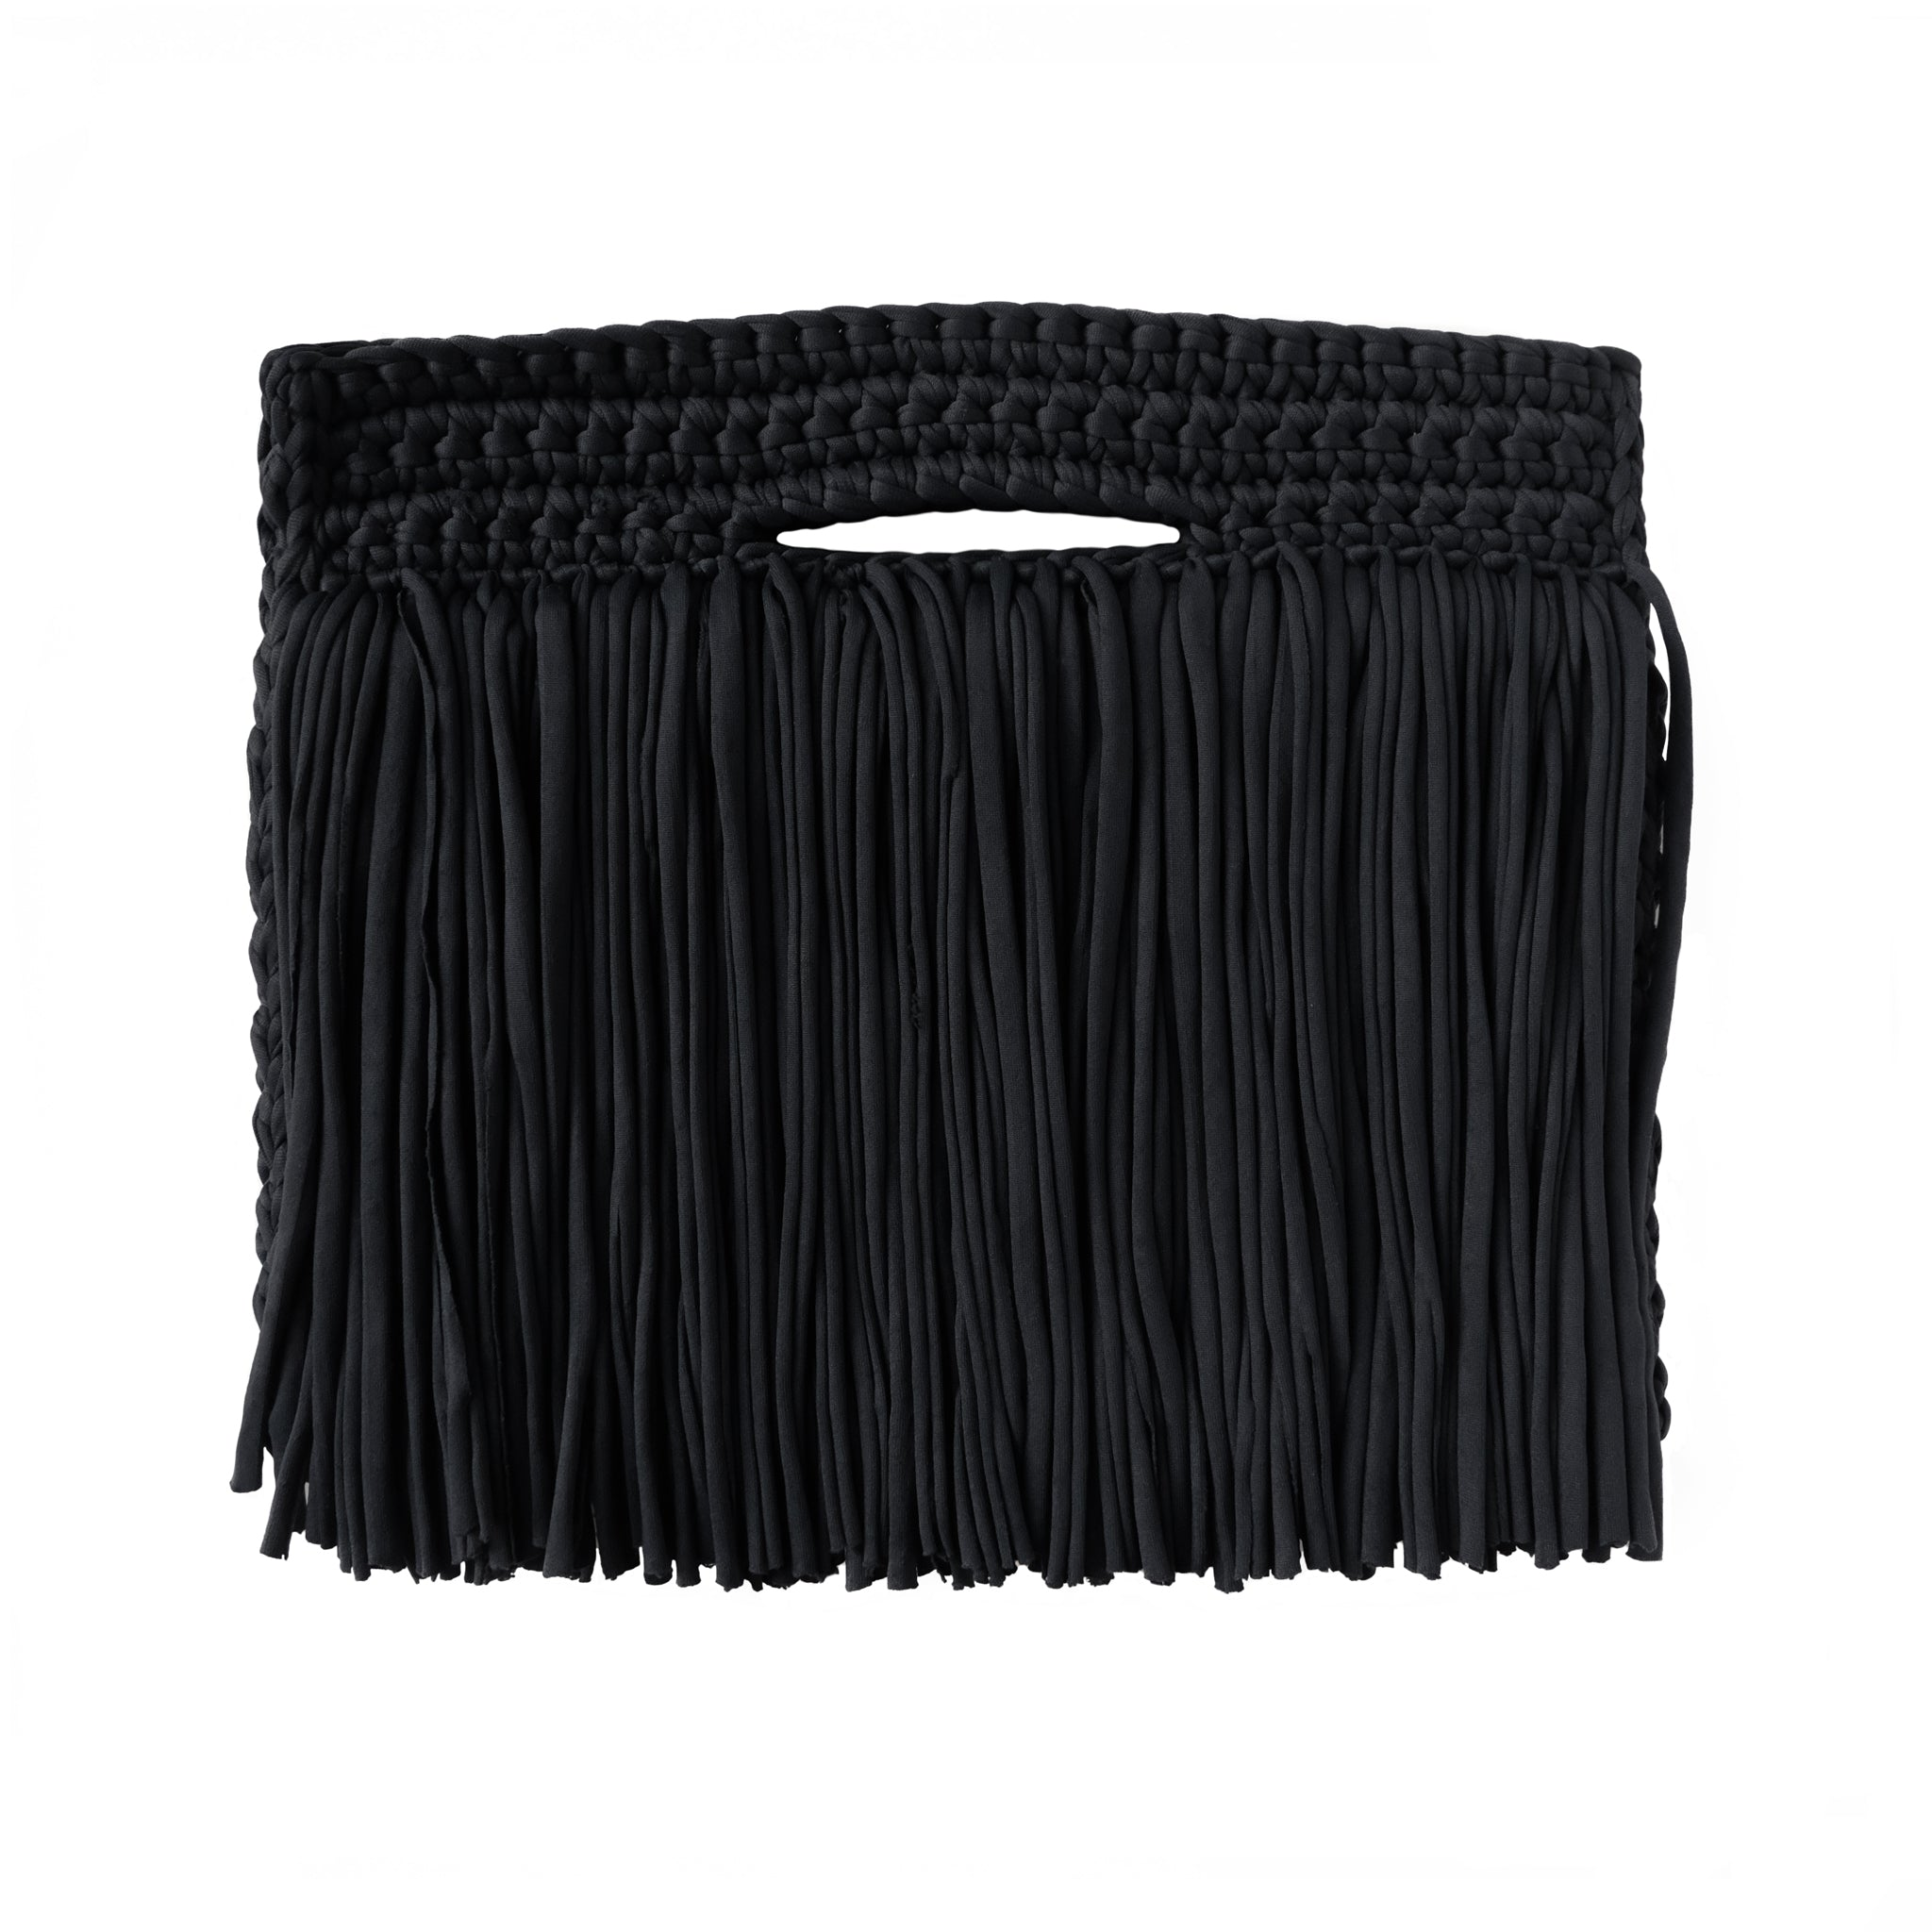 Binge Knitting Clutch Fringes Over Recycled Cotton